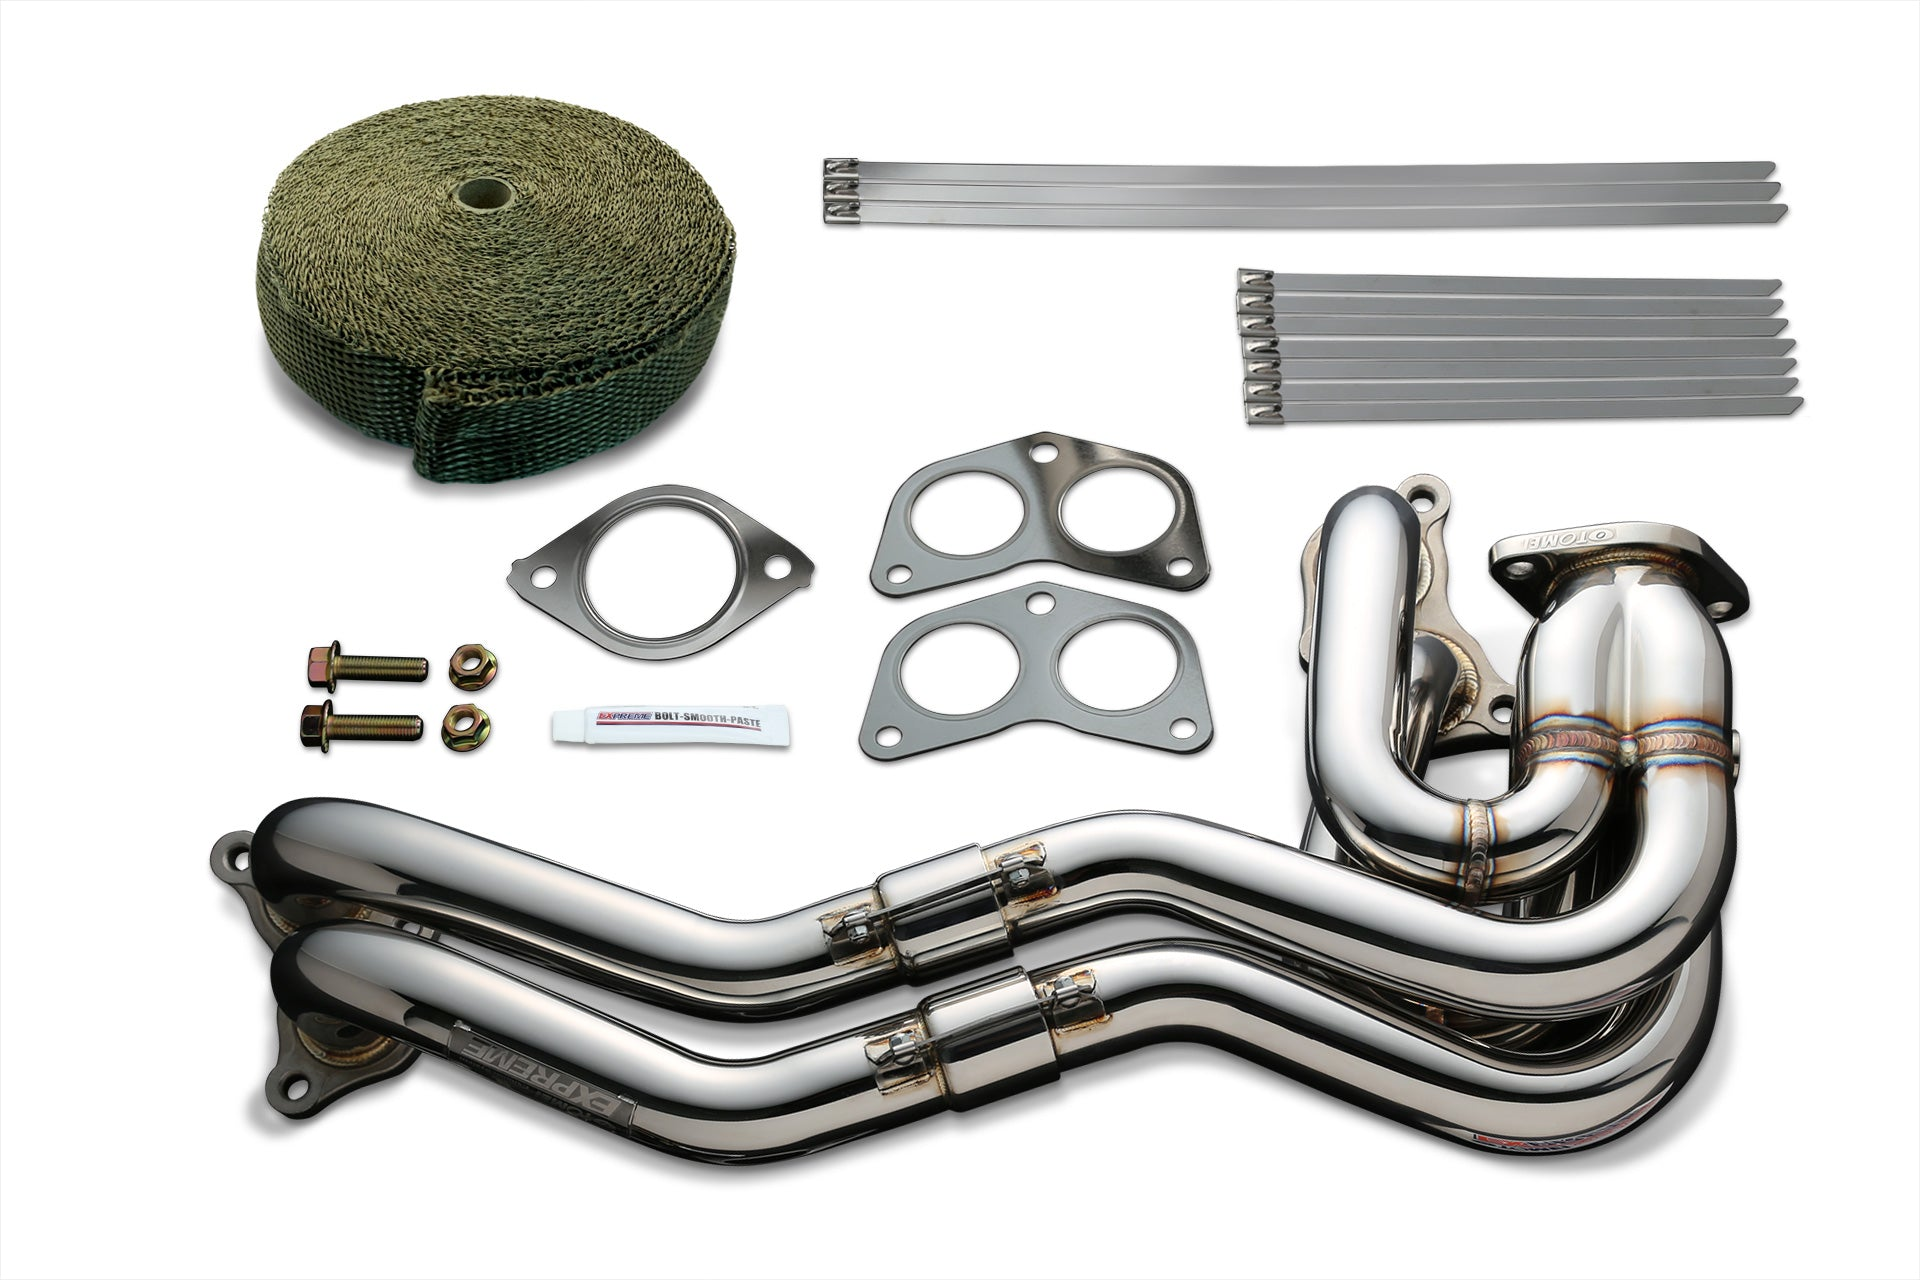 Tomei EXHAUST MANIFOLD KIT EXPREME FA20 ZN6/ZC6 UNEQUAL LENGTH with TITAN EXHAUST BANDAGE (Previous Part Number 412003)